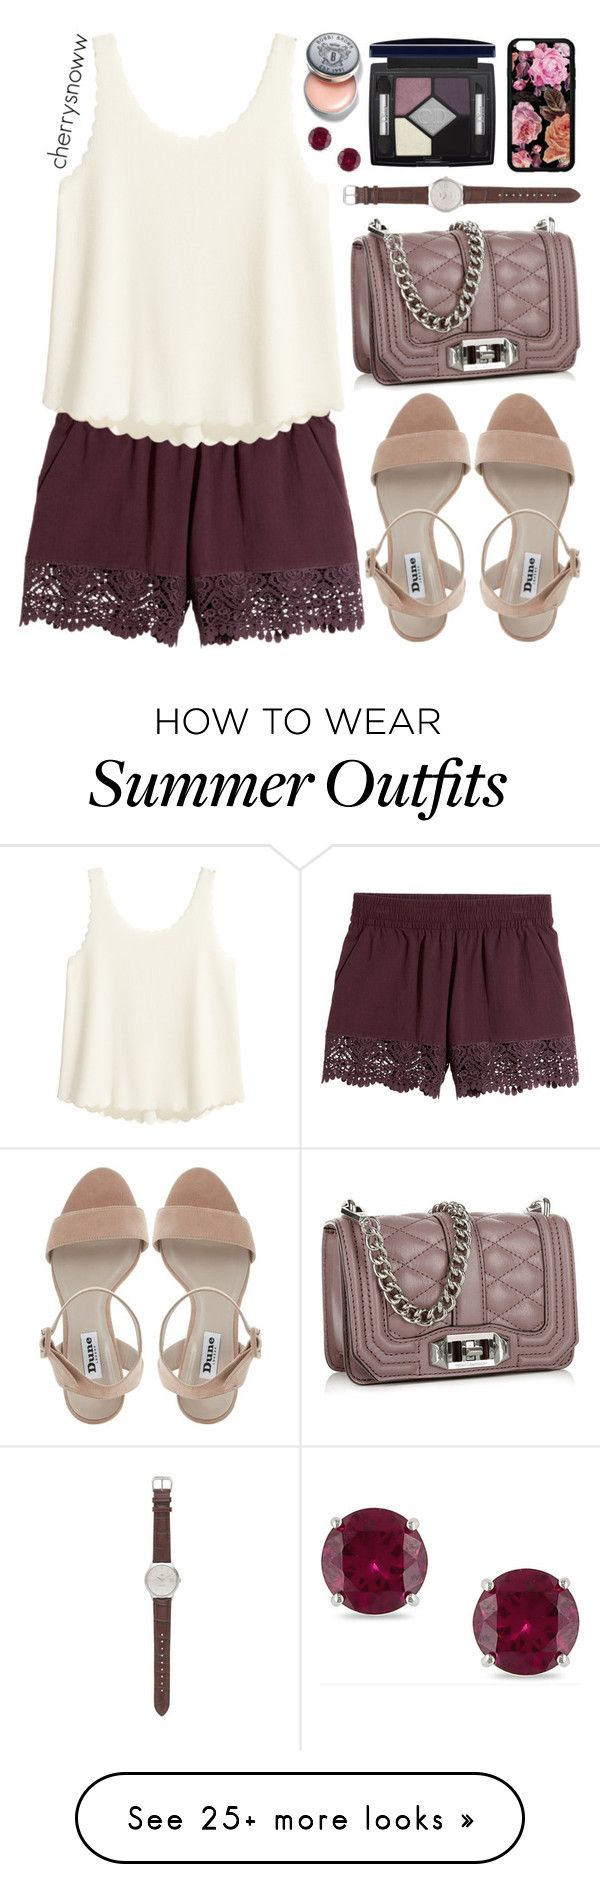 Summer Outfits Quot Casual Chic Plum Summer Outfit Quot By Cherrysnoww On Polyvore Featuring J Crew